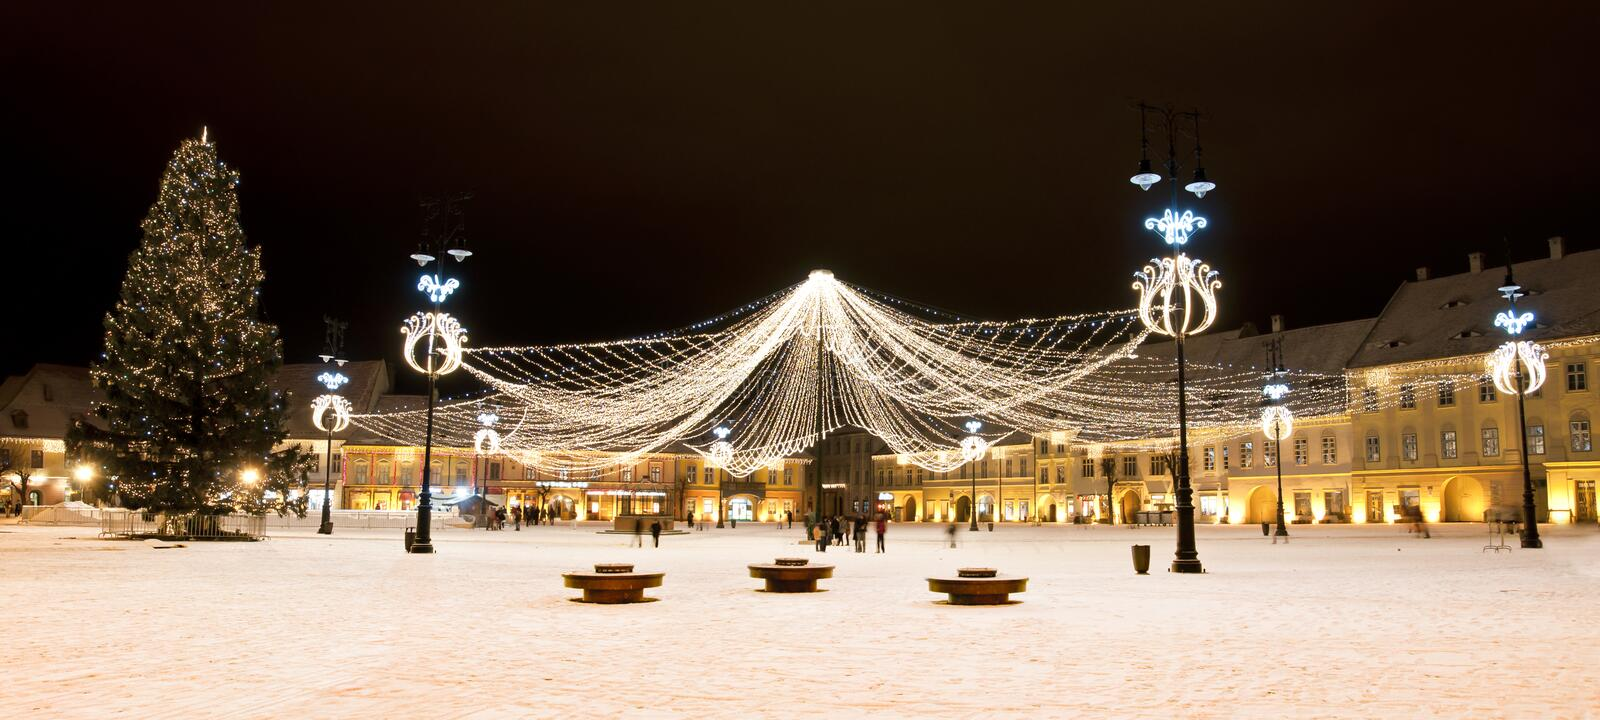 Download Christmas Tree And Lights In Old Town Square Stock Photo - Image of xmas, main: 34172364